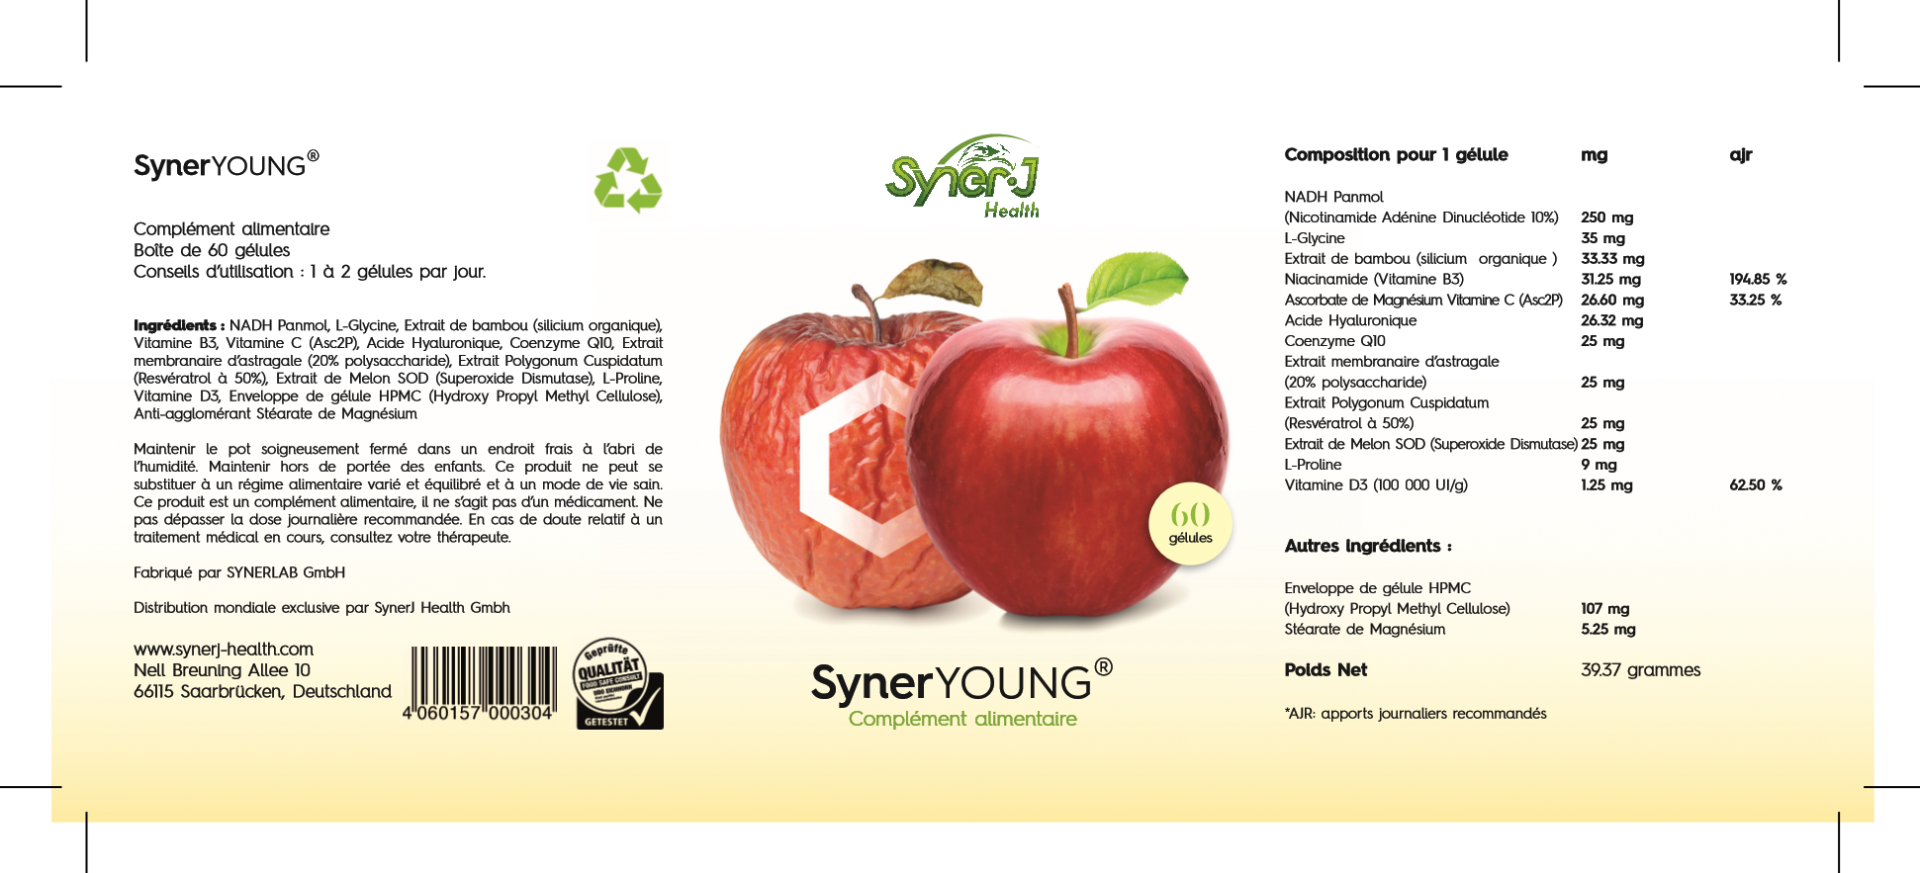 Syneryoung etiquette